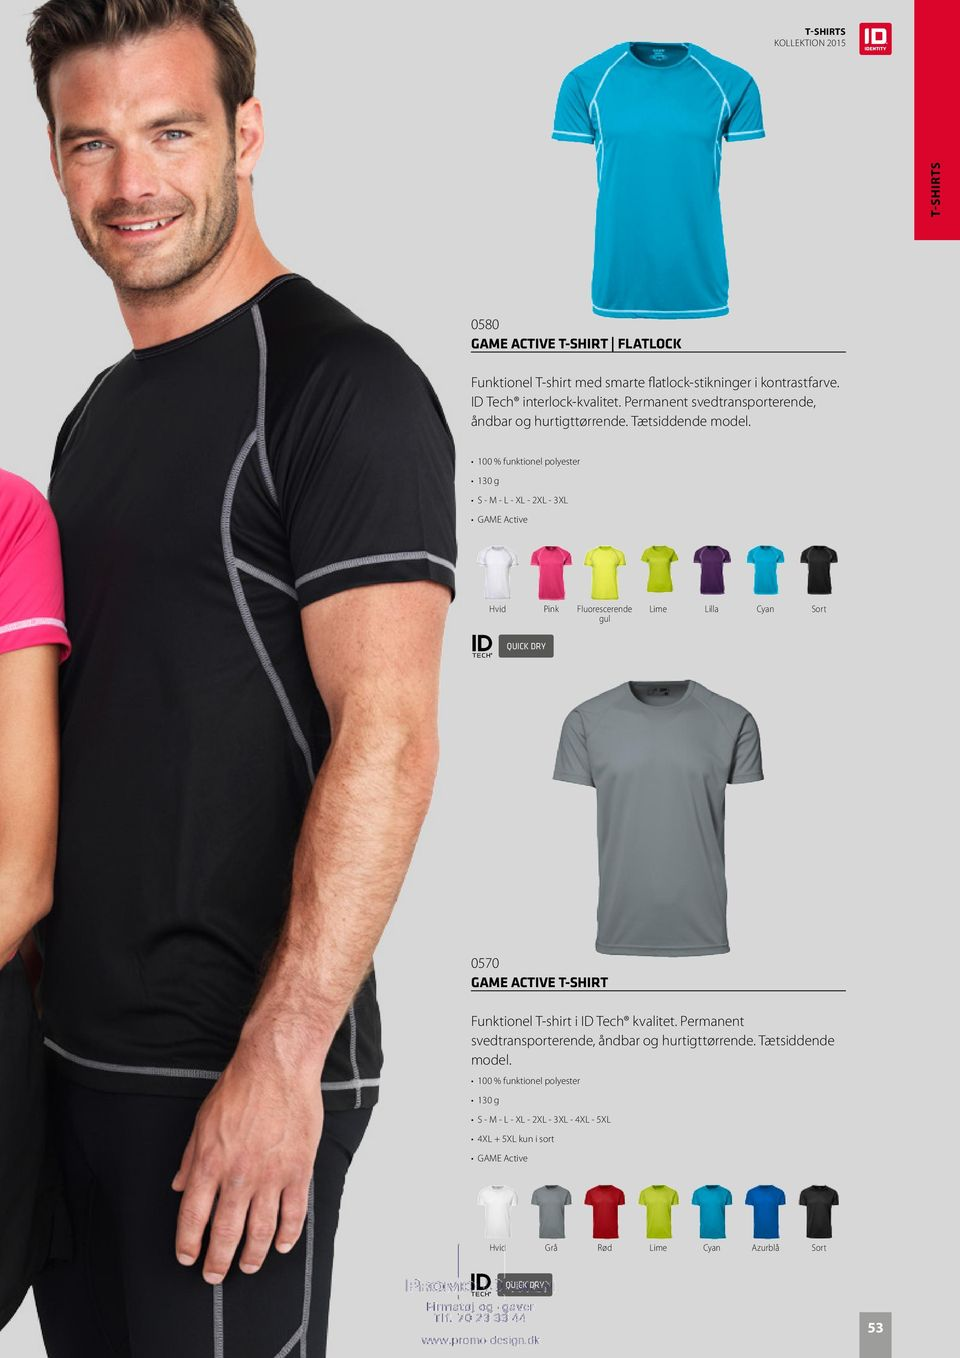 130 g S - M - L - XL - 2XL - 3XL Hvid Pink Fluorescerende gul Lime Lilla Cyan 0570 GAME ACTIVE T-SHIRT Funktionel T-shirt i ID Tech